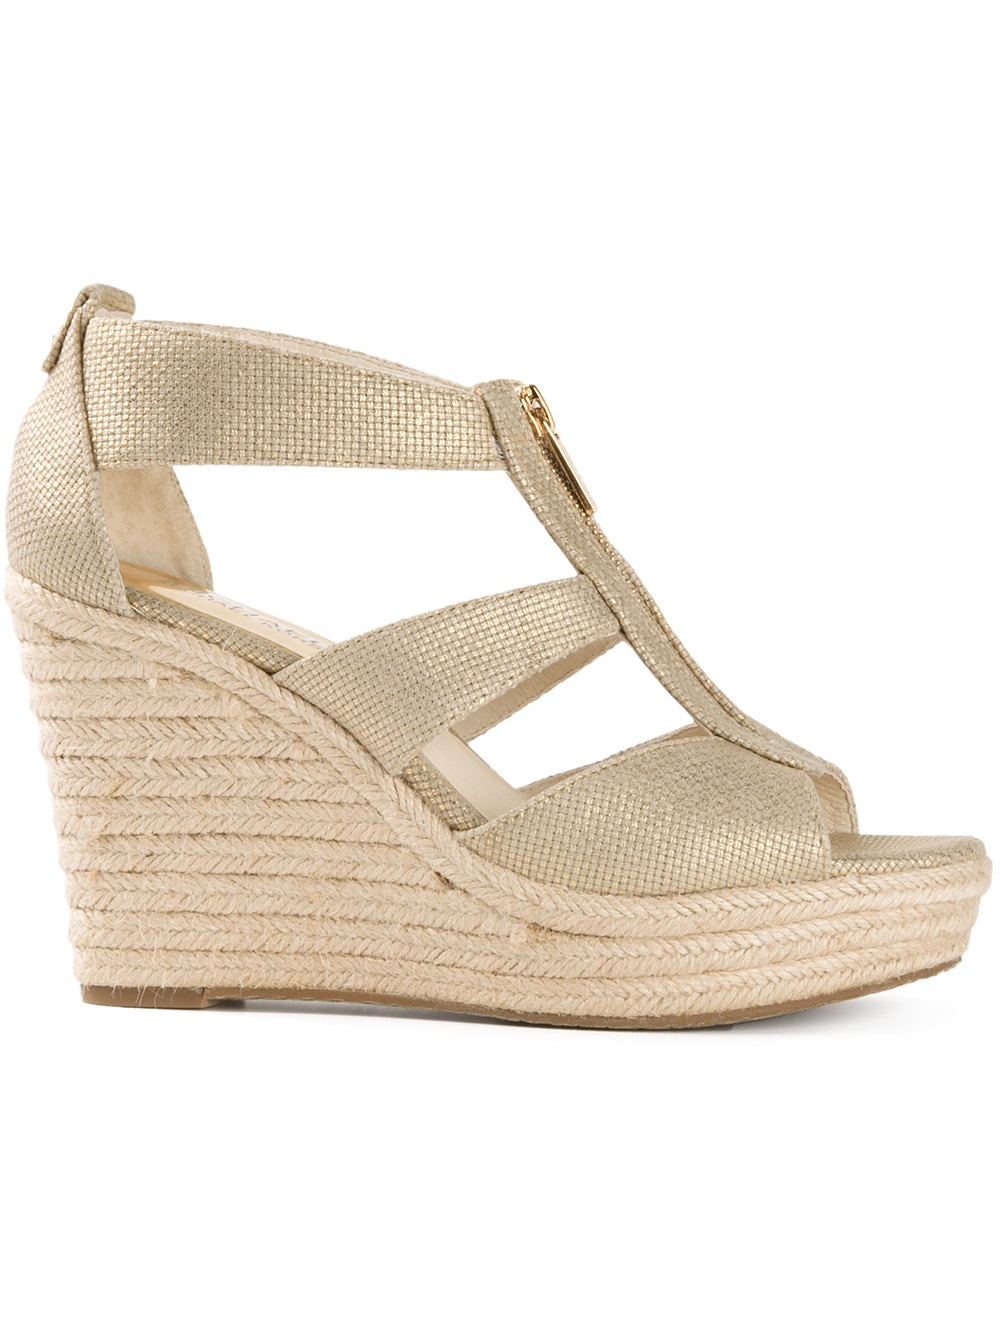 43e44a4d6c99 Lyst - MICHAEL Michael Kors Damita Wedge Sandals in Natural